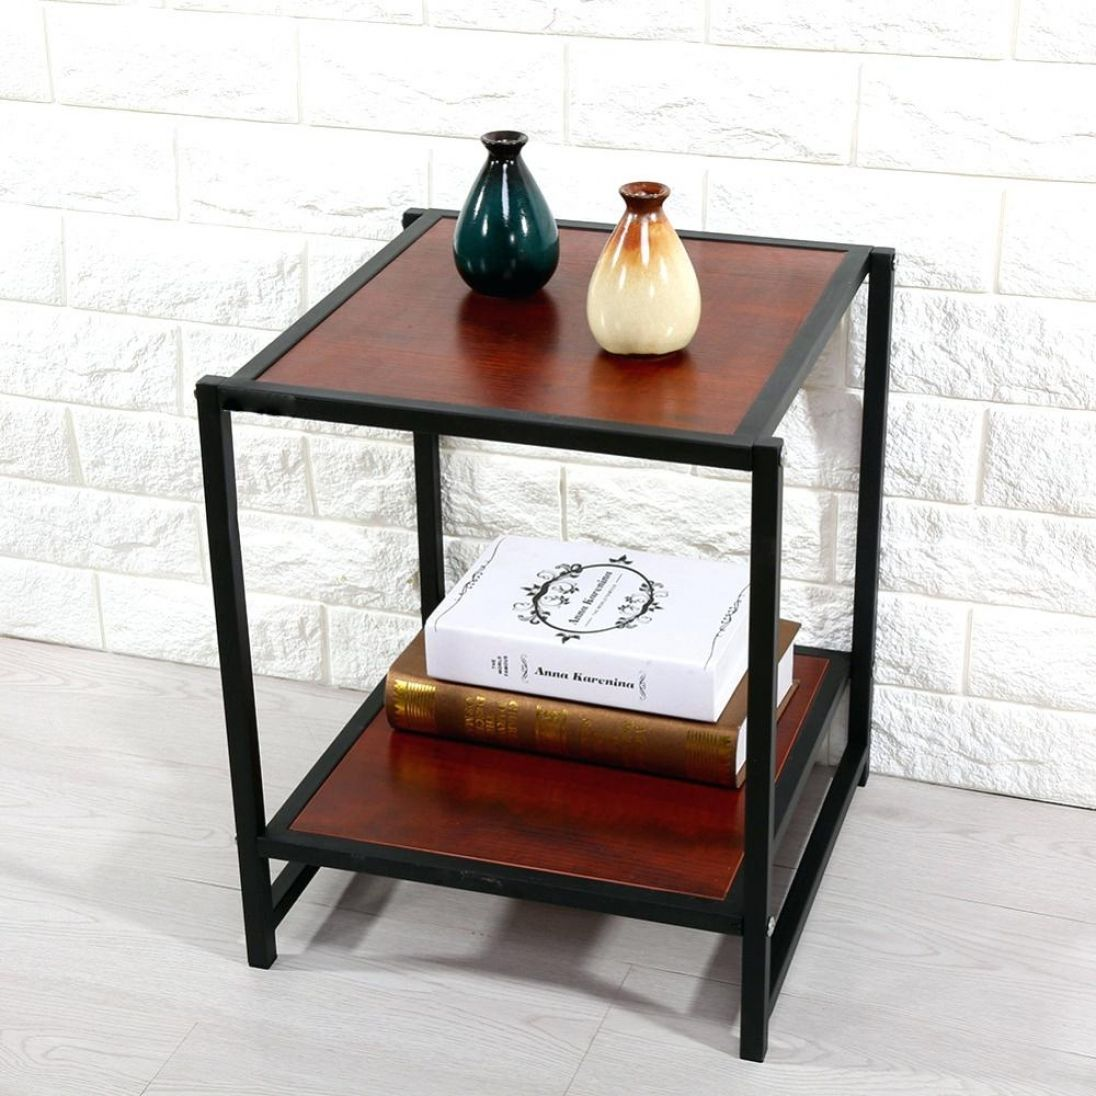 buy coffee table books online interior paint color schemes the